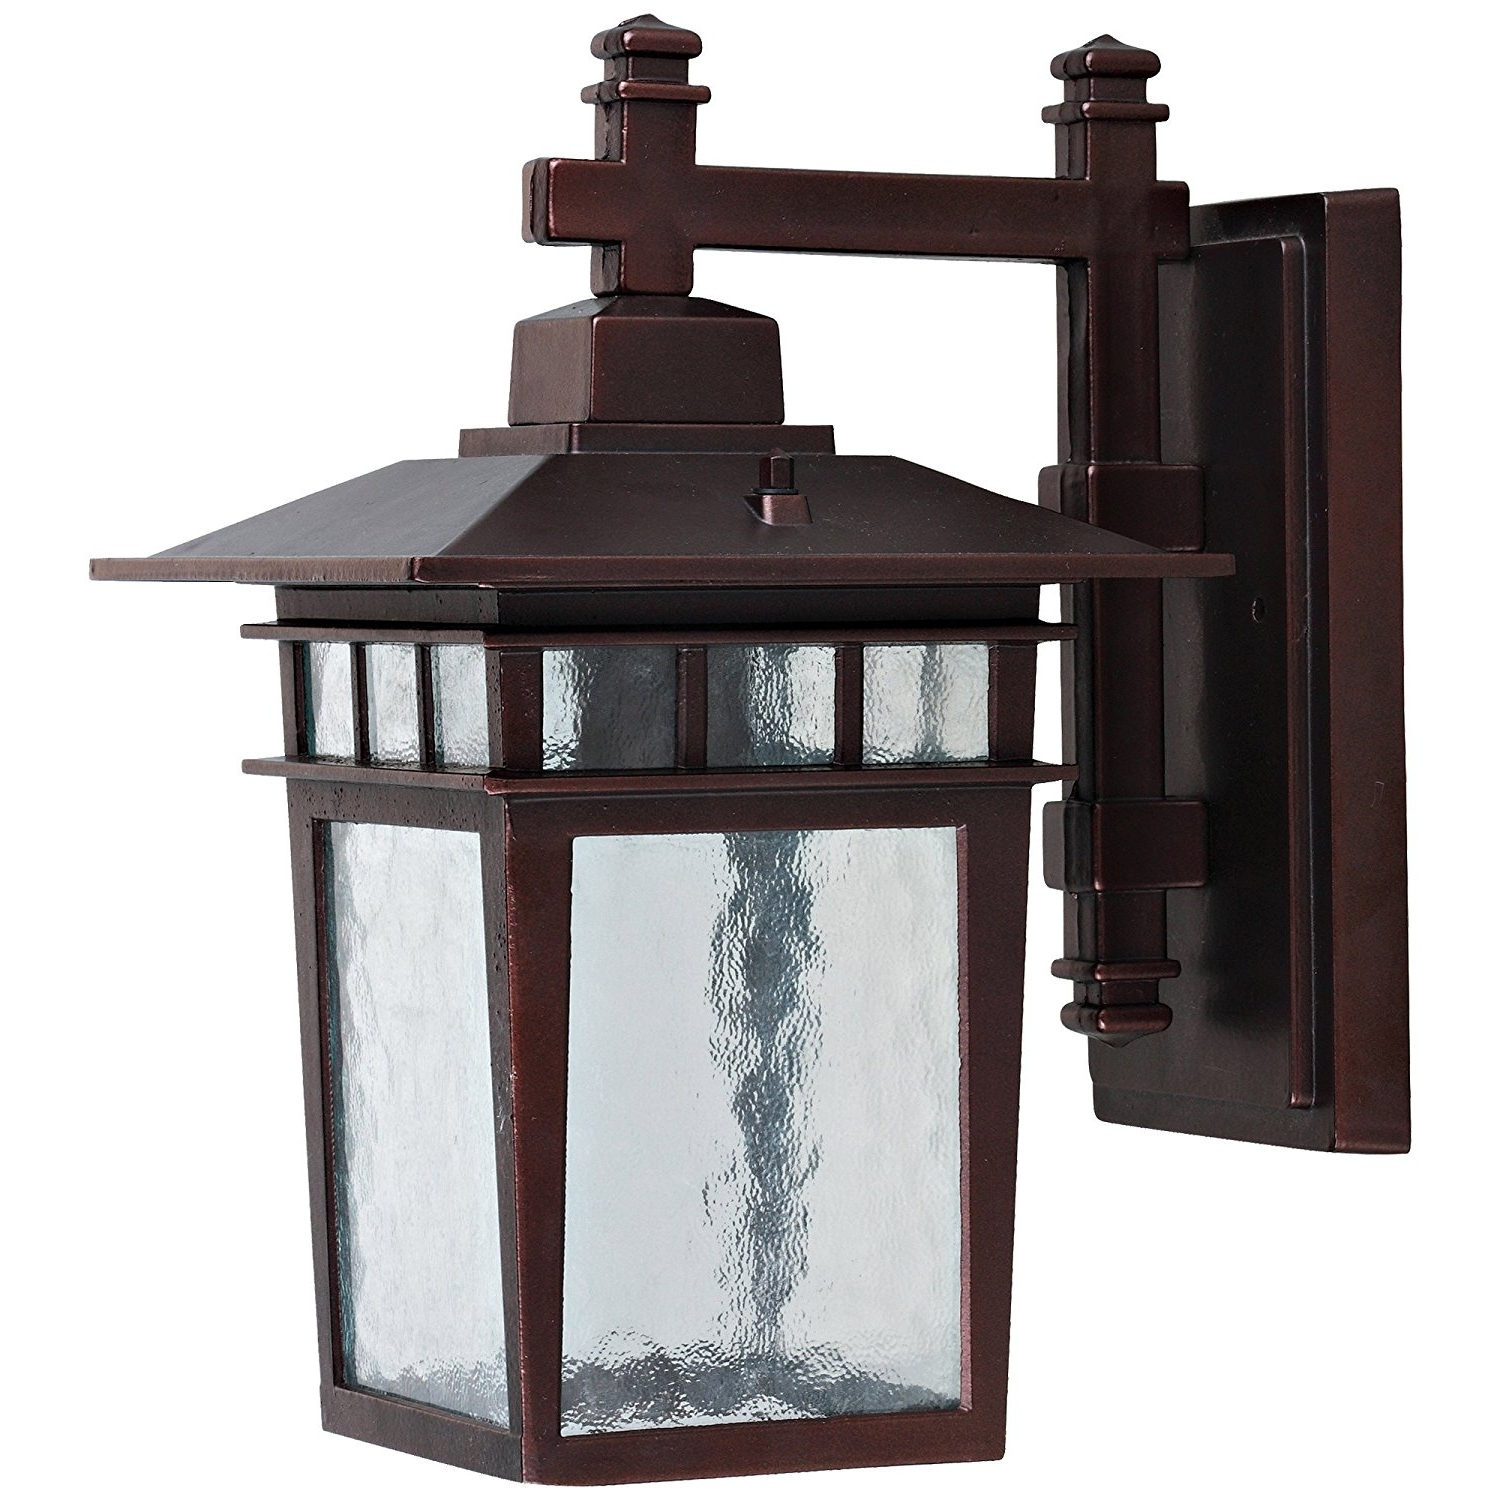 Modern Garden Porch Light Fixtures At Wayfair With Famous Outdoor : Outside Wall Lamps Outdoor Sconce Light Fixtures Flush (View 7 of 20)